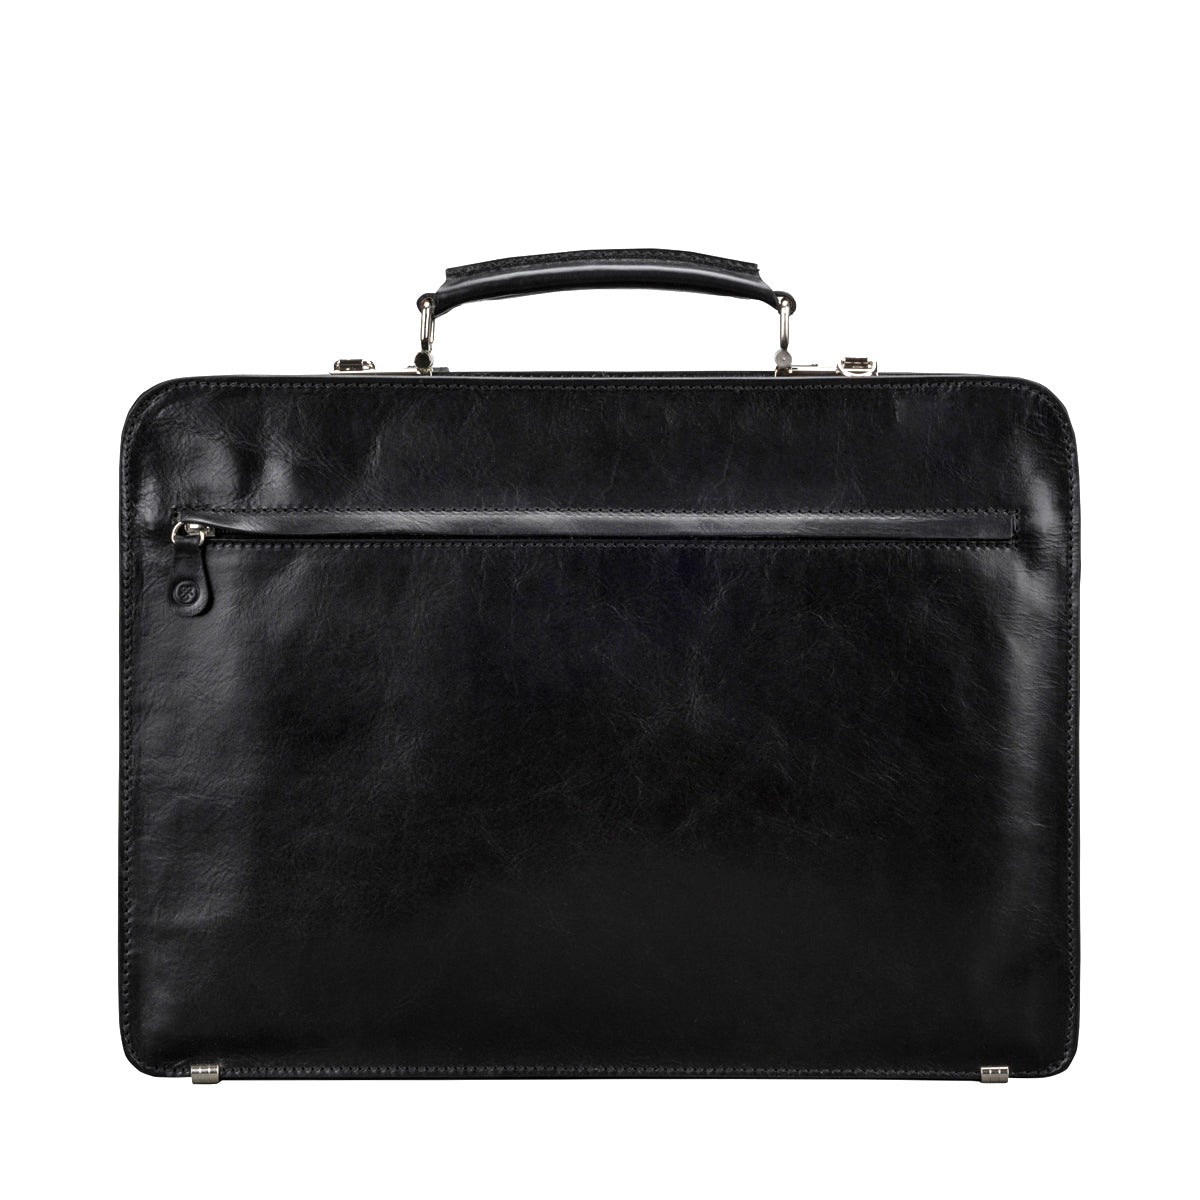 Image 4 of the Alanzo' Black Veg-Tanned Leather Briefcase